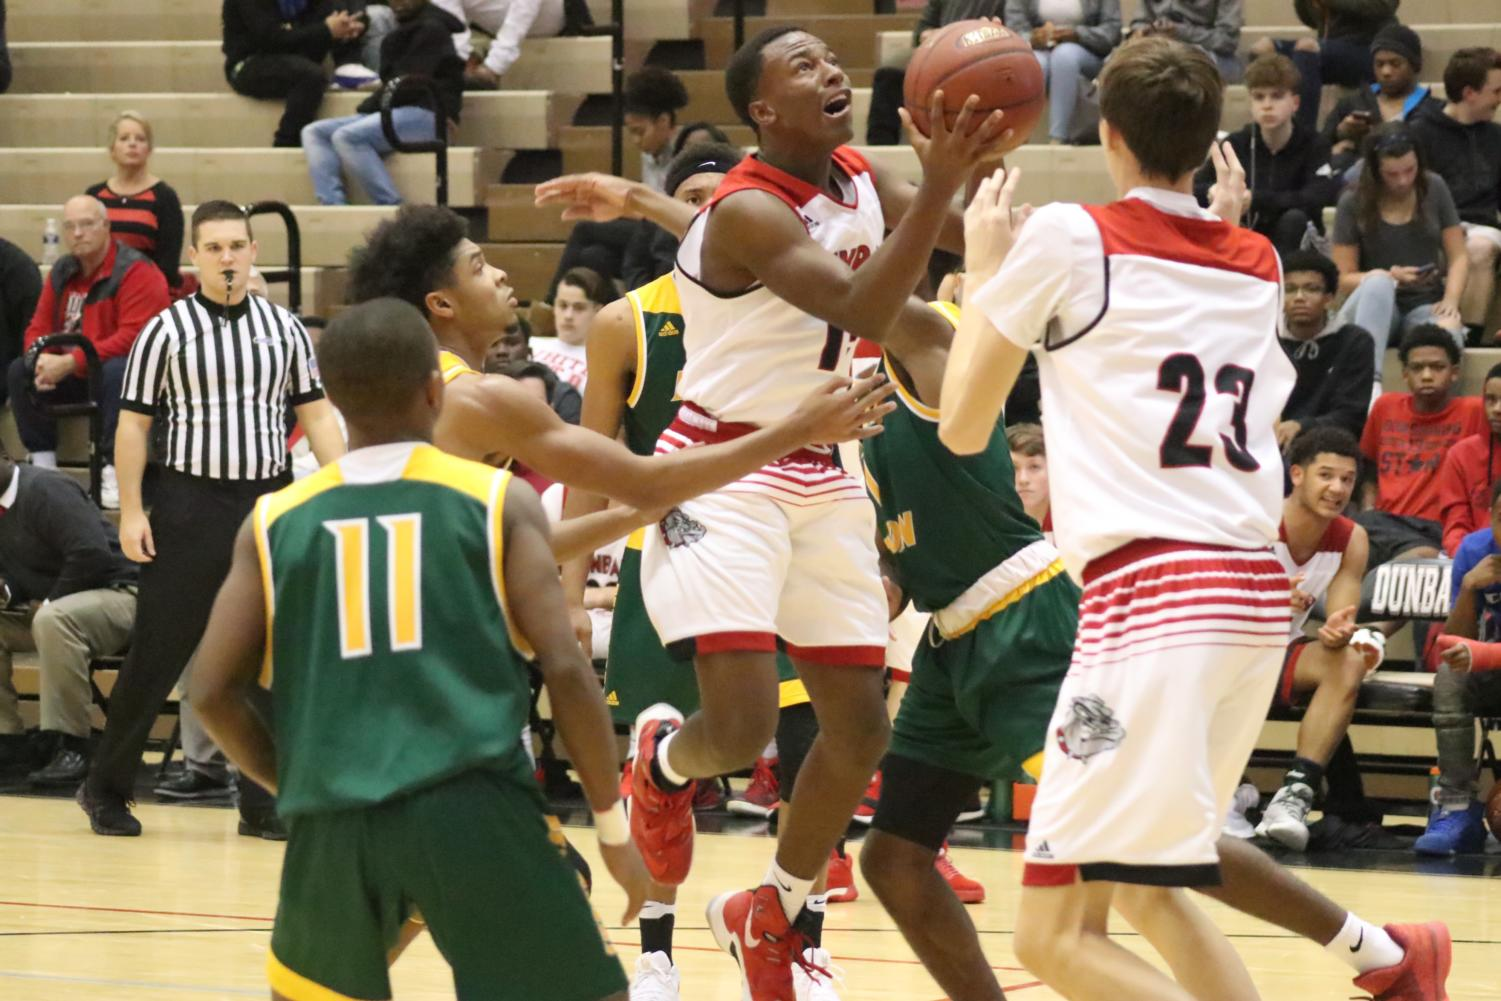 Boys' Basketball Faces Defeat At First Home Game